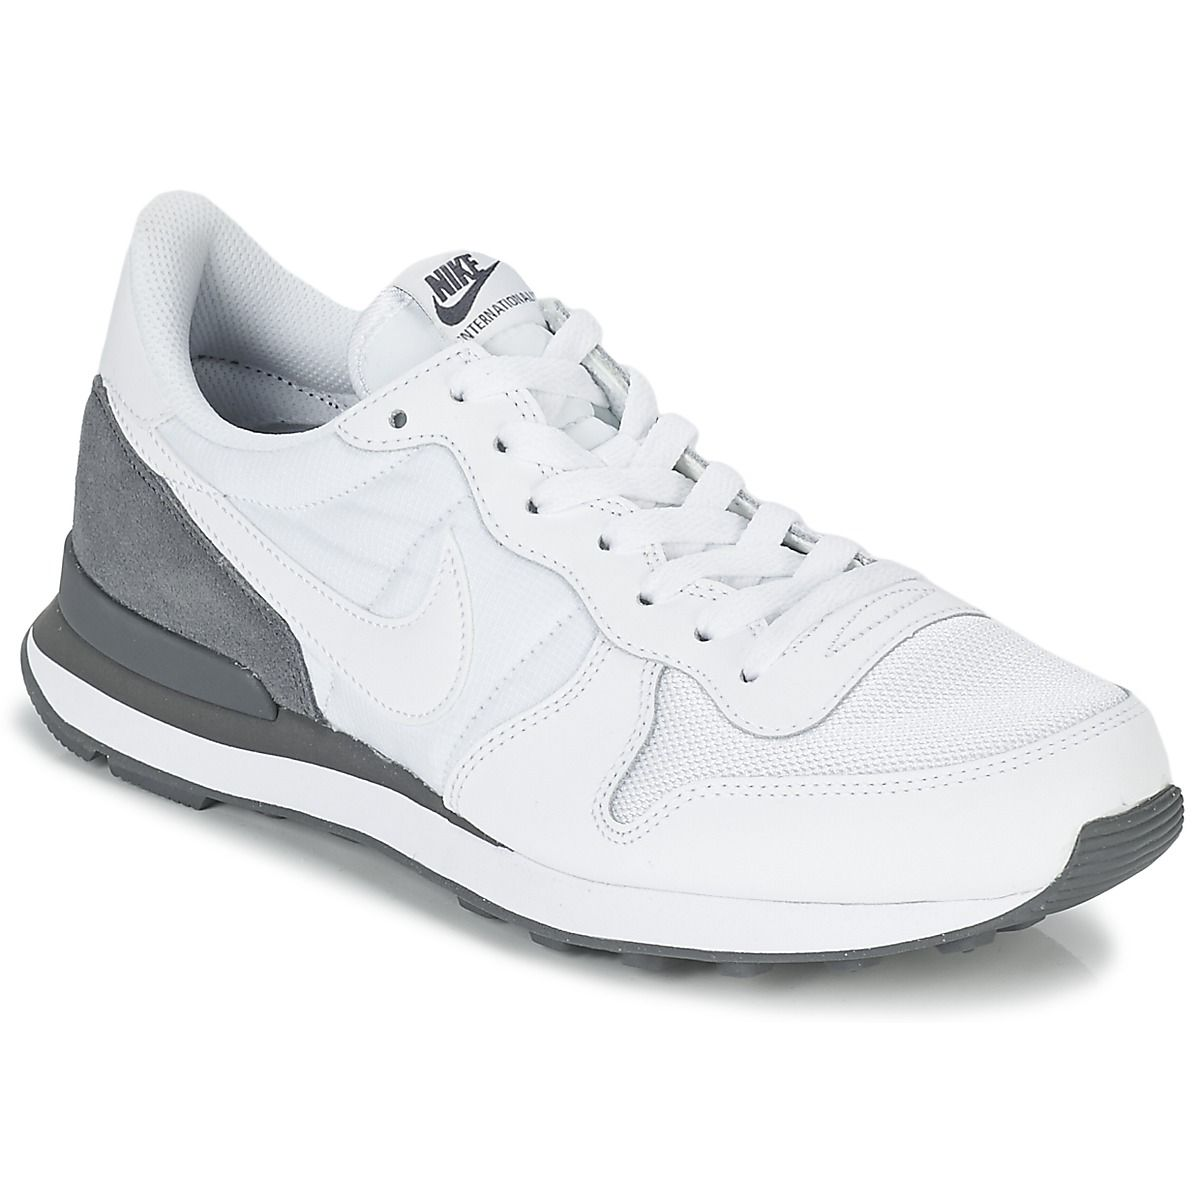 INTERNATIONALIST - CHAUSSURES - Sneakers & Tennis bassesNike isQIGCzkBx